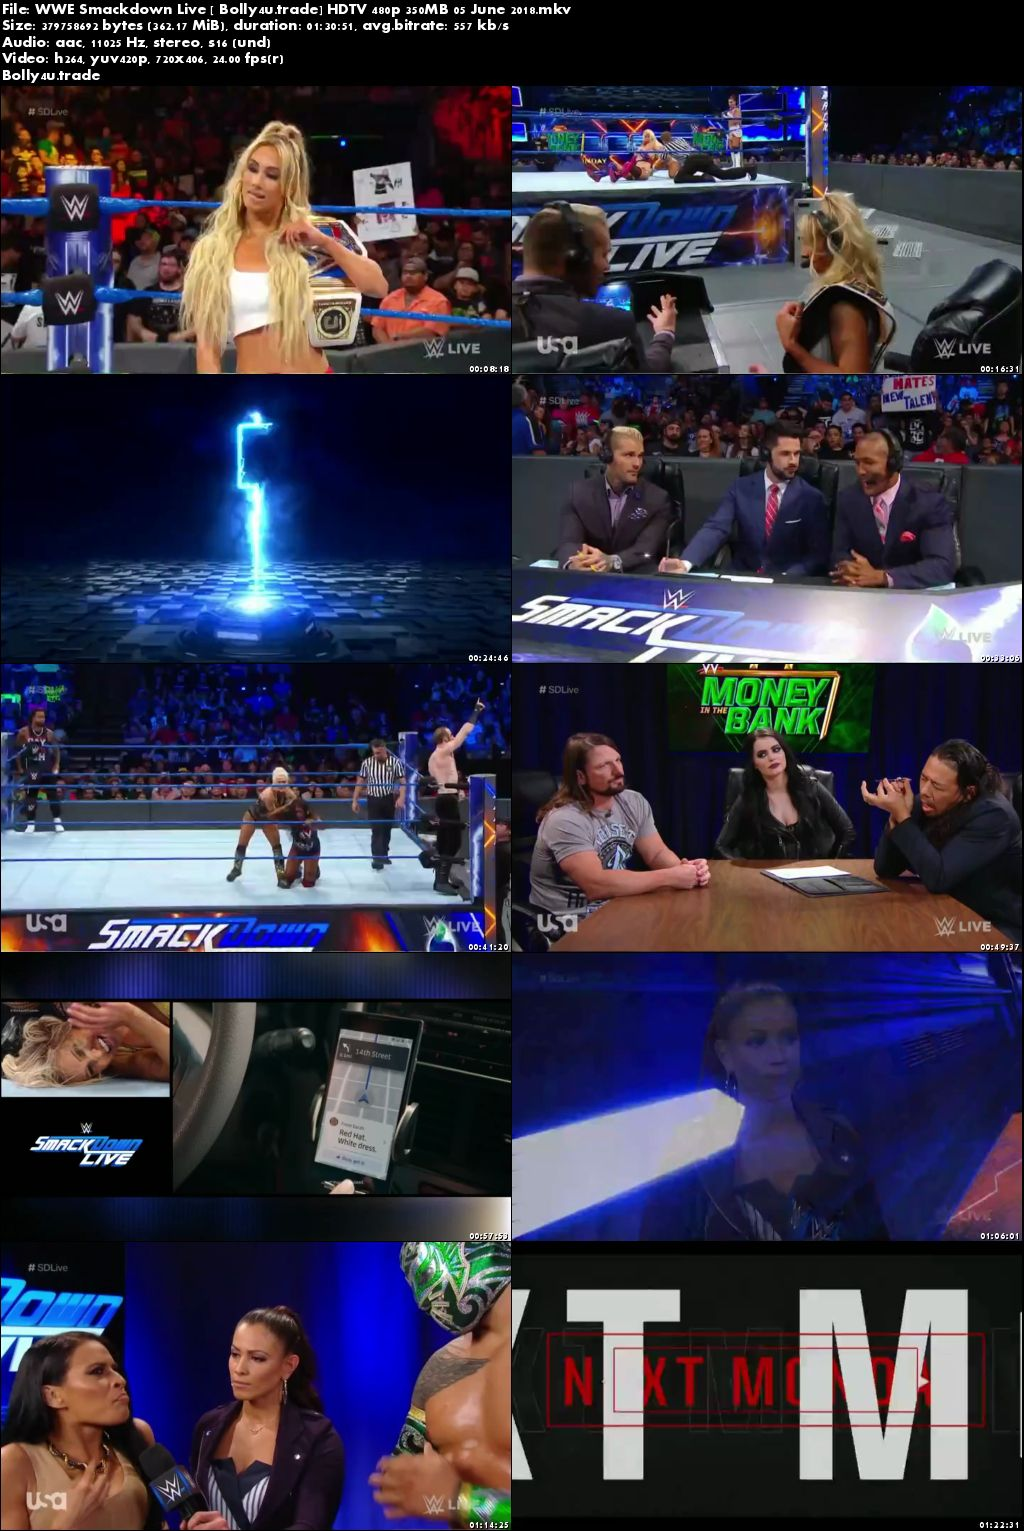 WWE Smackdown Live HDTV 480p 350Mb 05 June 2018 Download